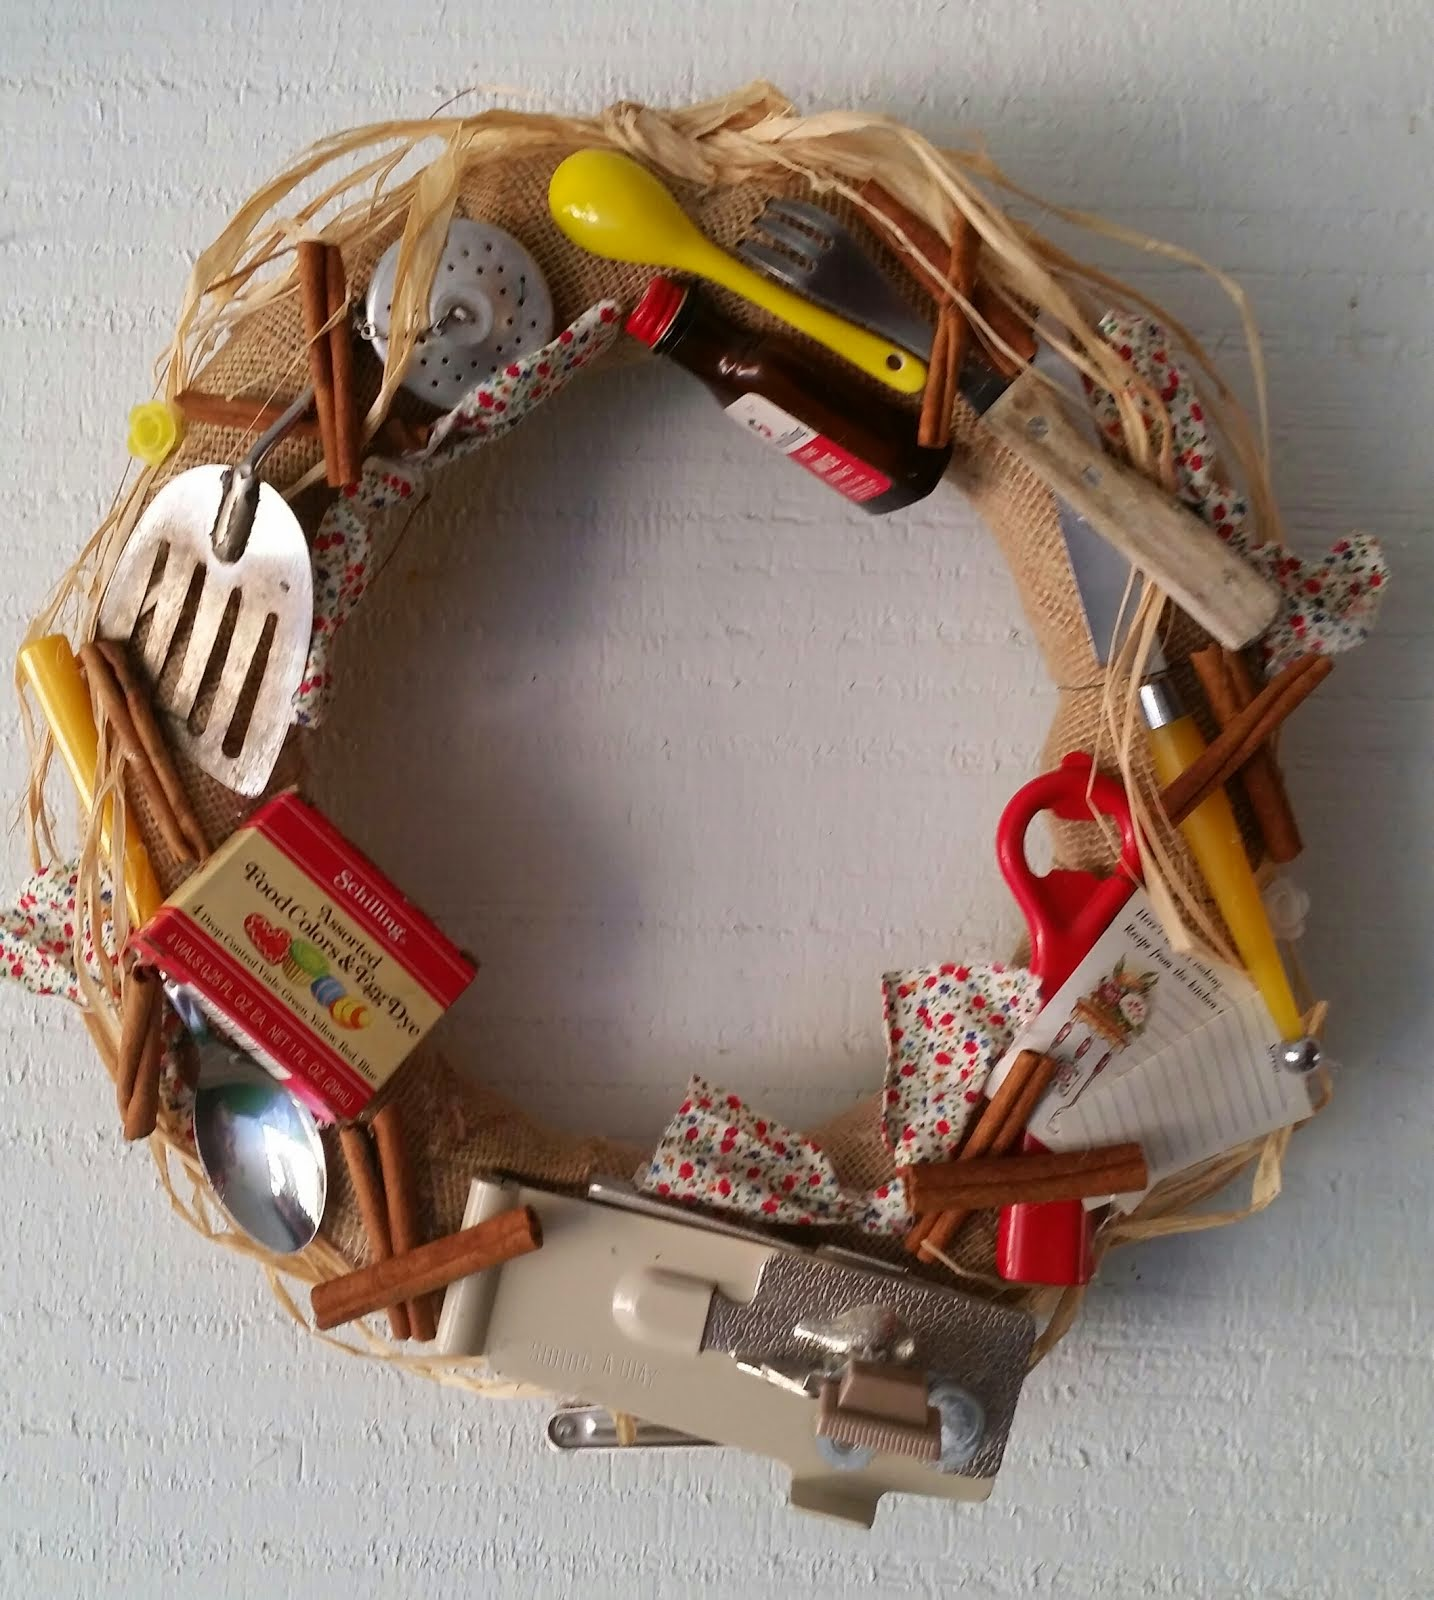 KITCHEN UTENSIL WREATH